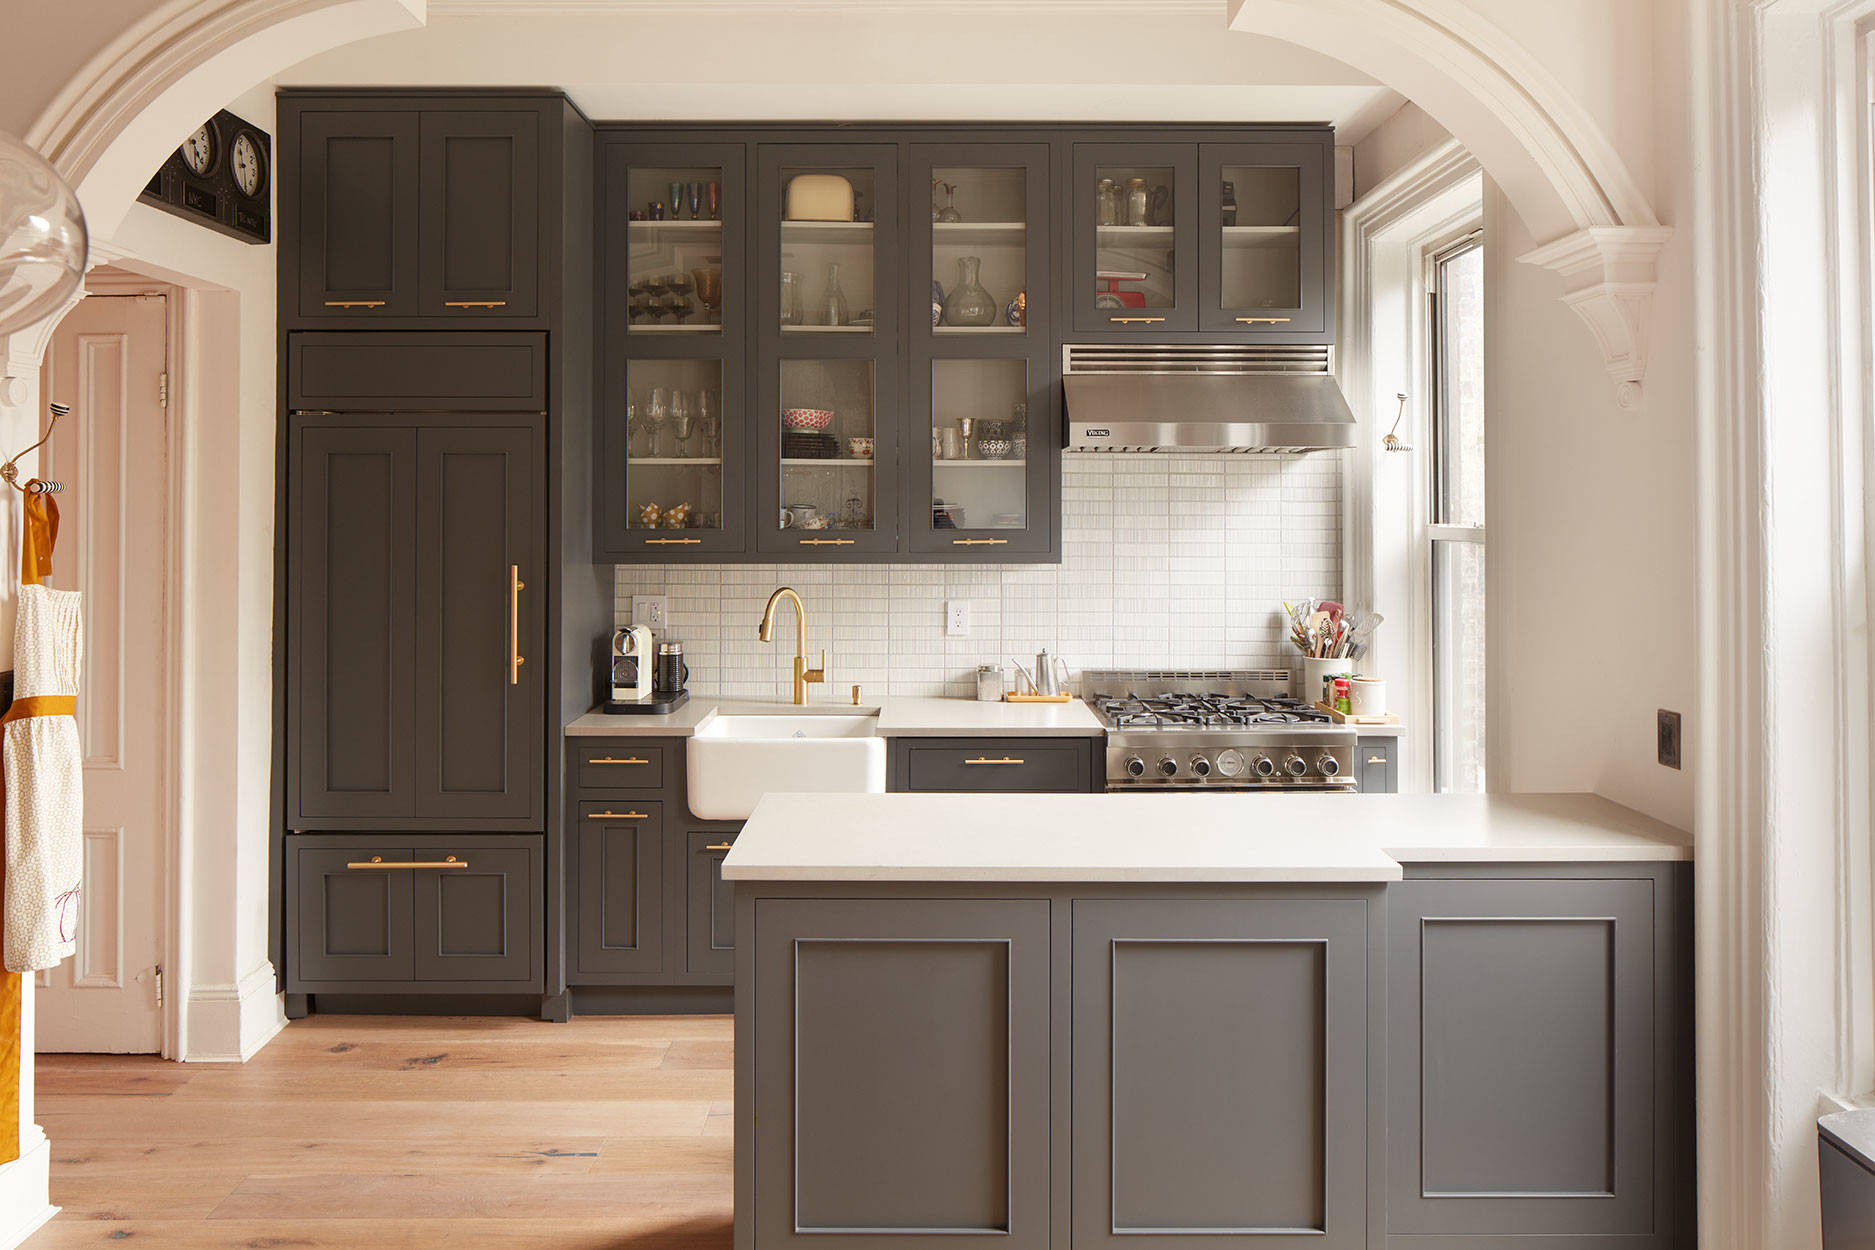 9 Reasons Why You Should Choose Wall Cabinets Over Open ...